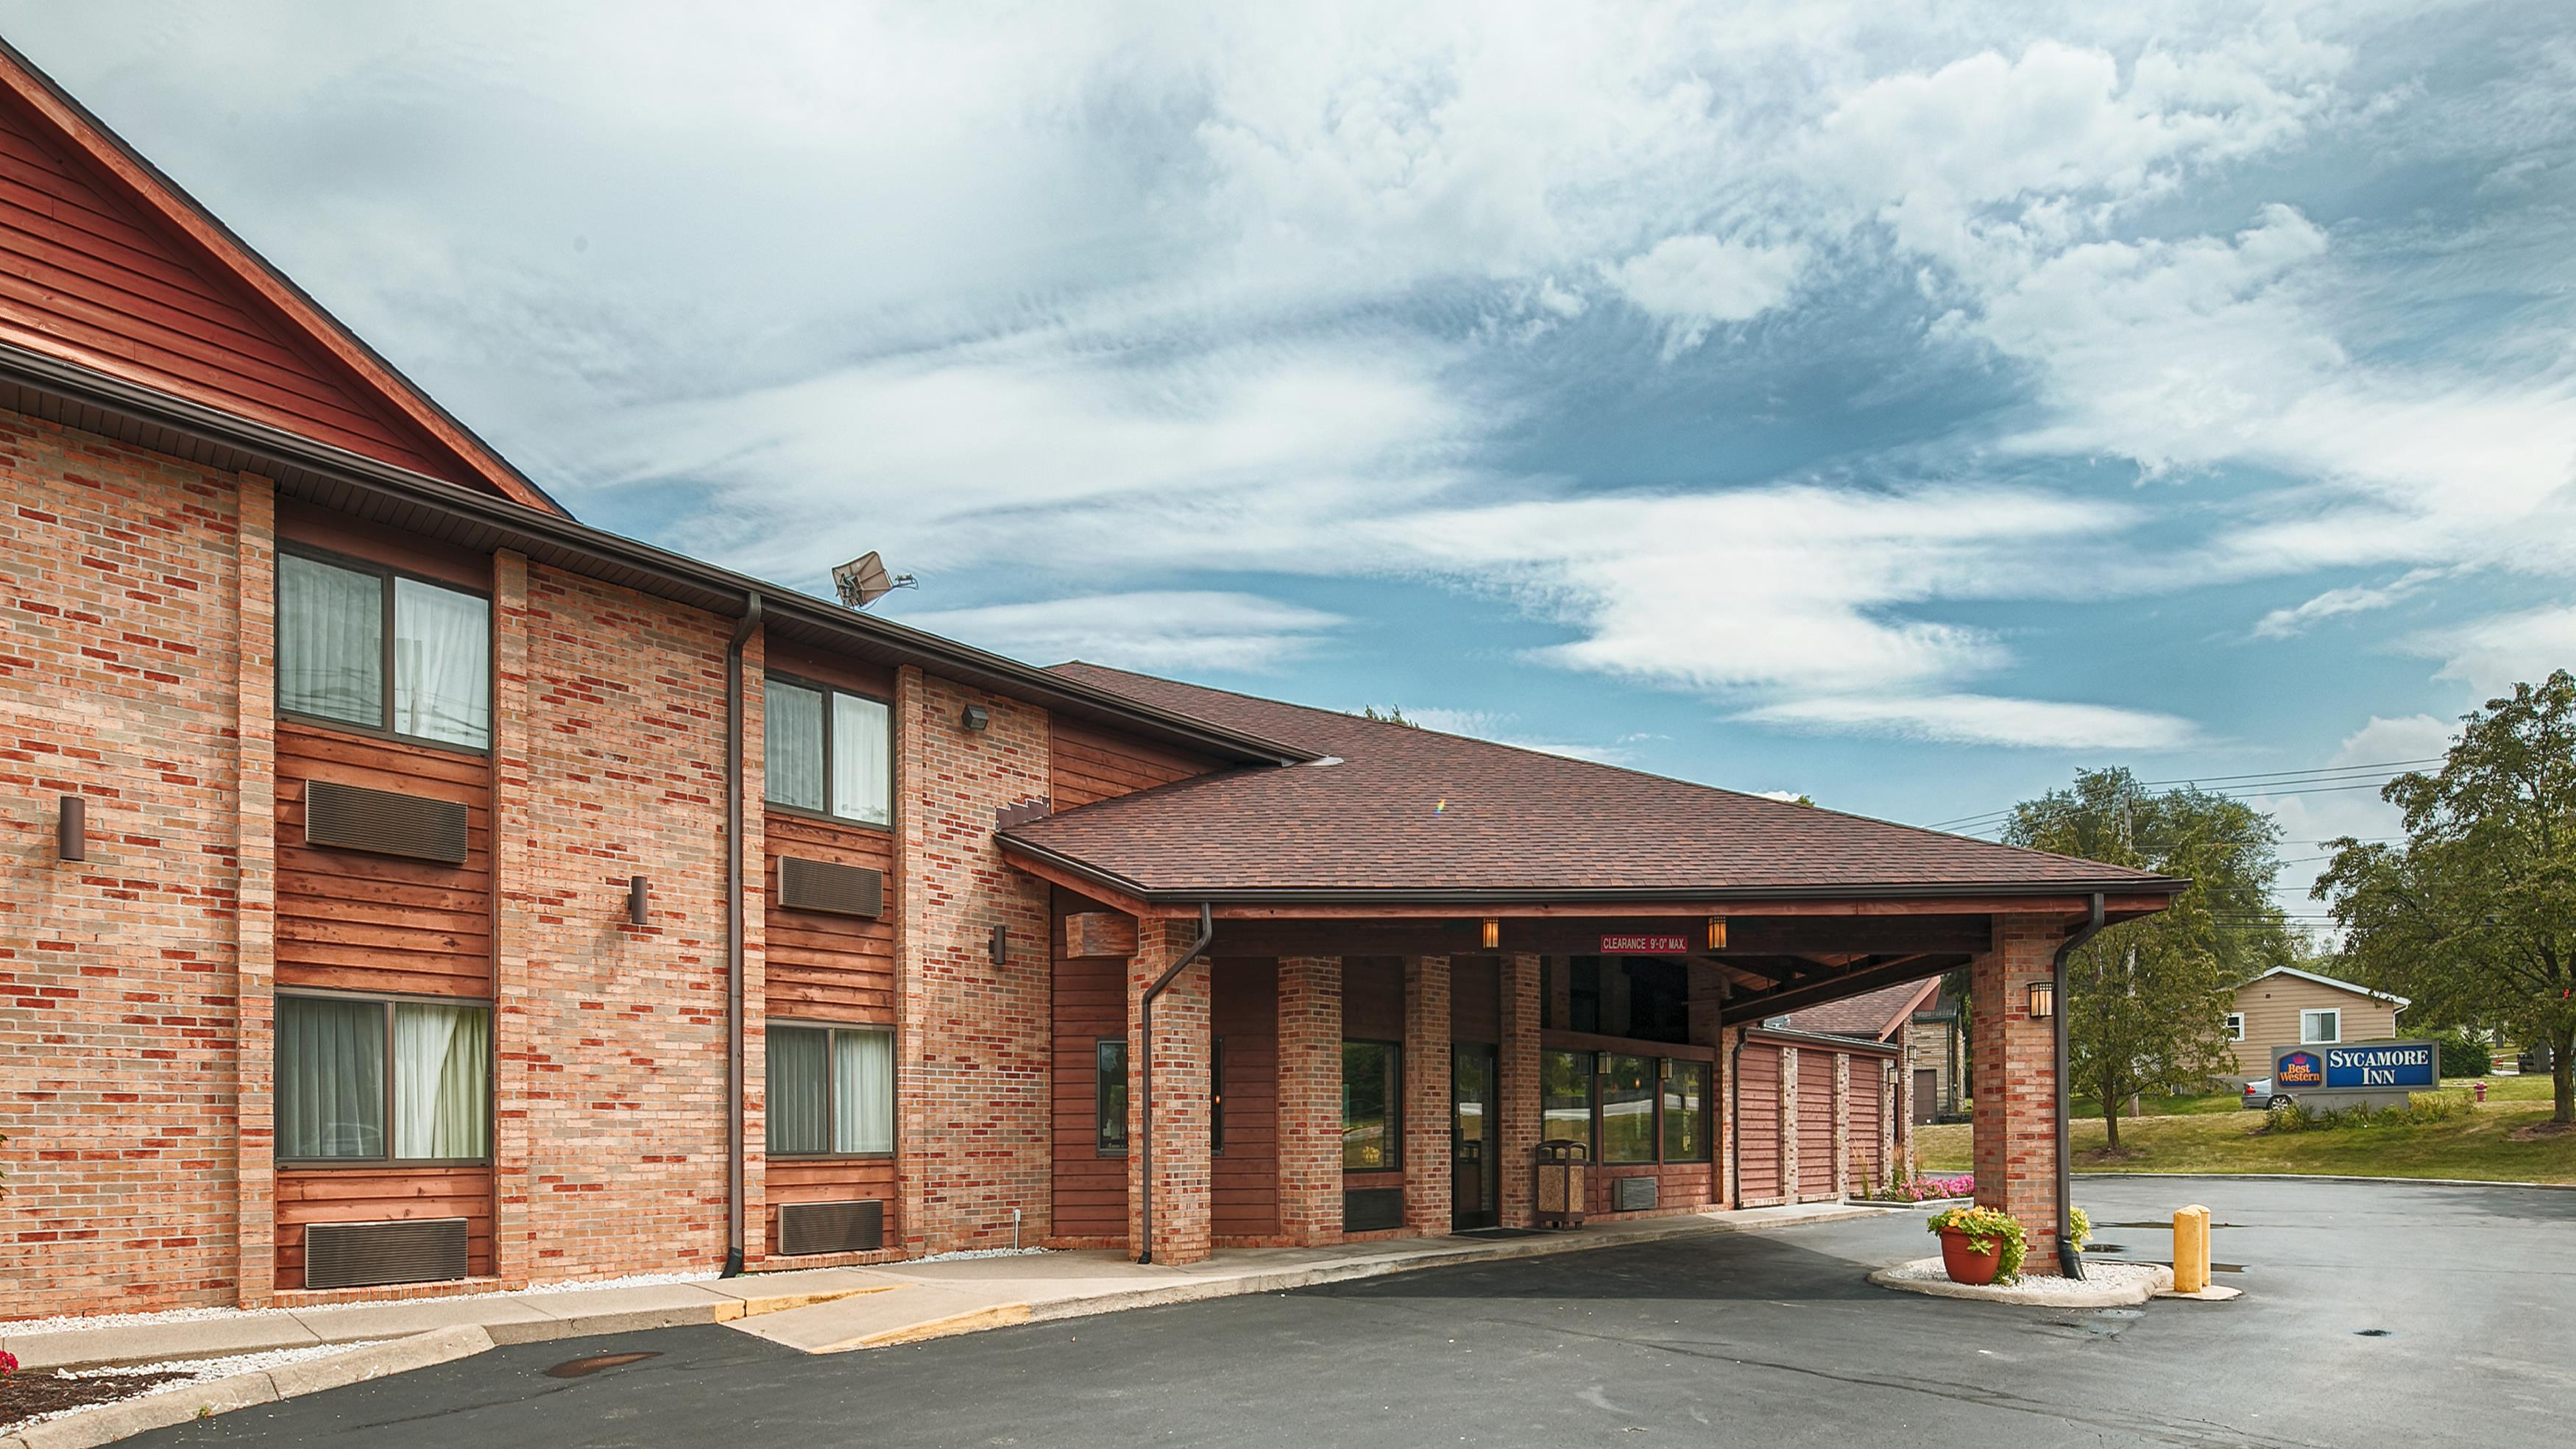 best western sycamore inn in oxford oh whitepages On best western oxford ohio